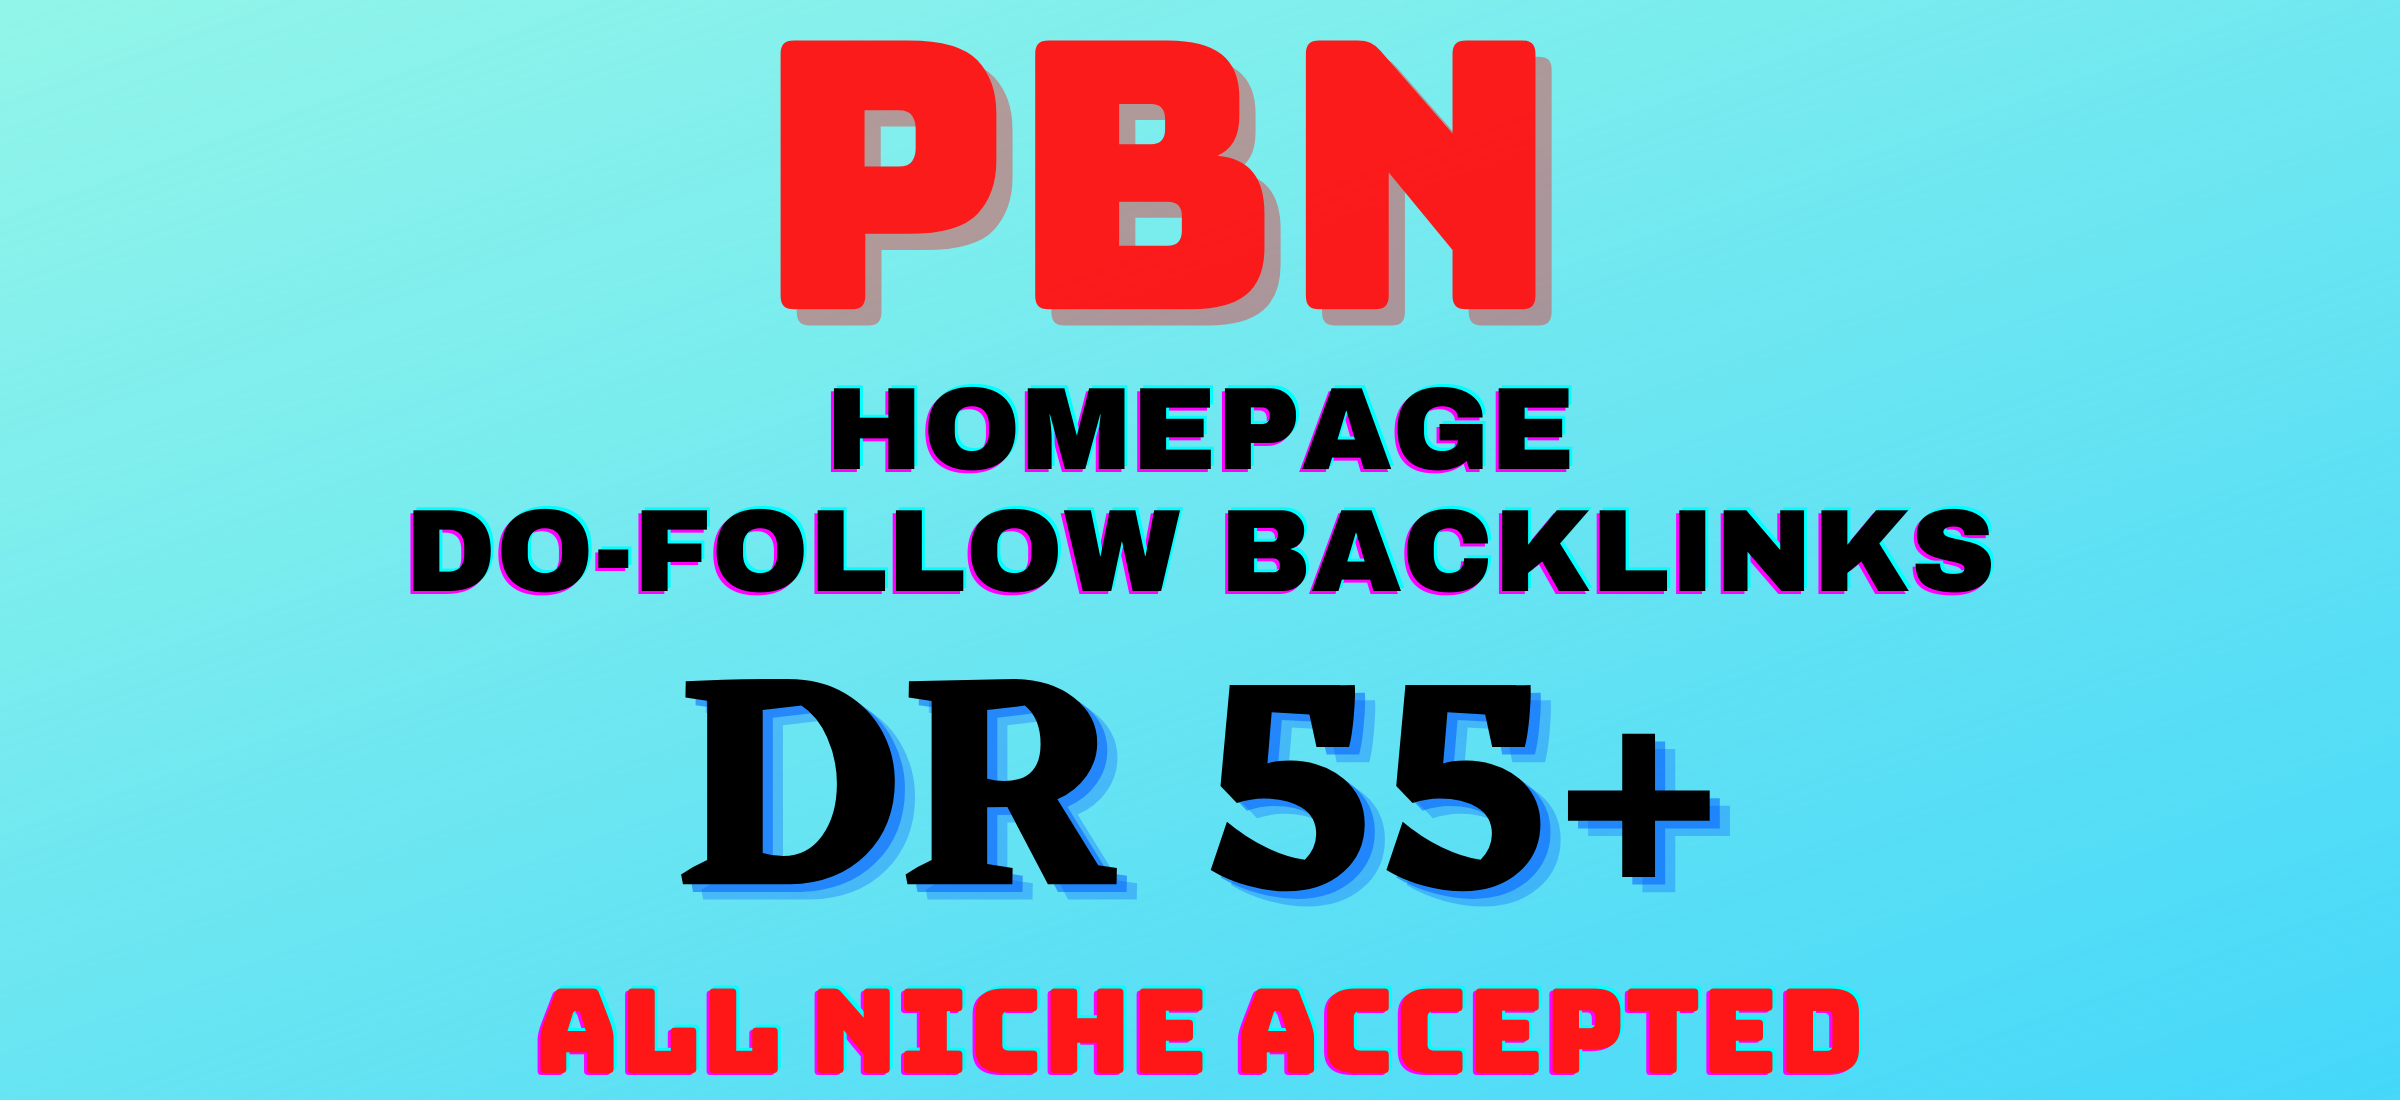 5 high quality homepage PBN backlinks from DR 55+ sites